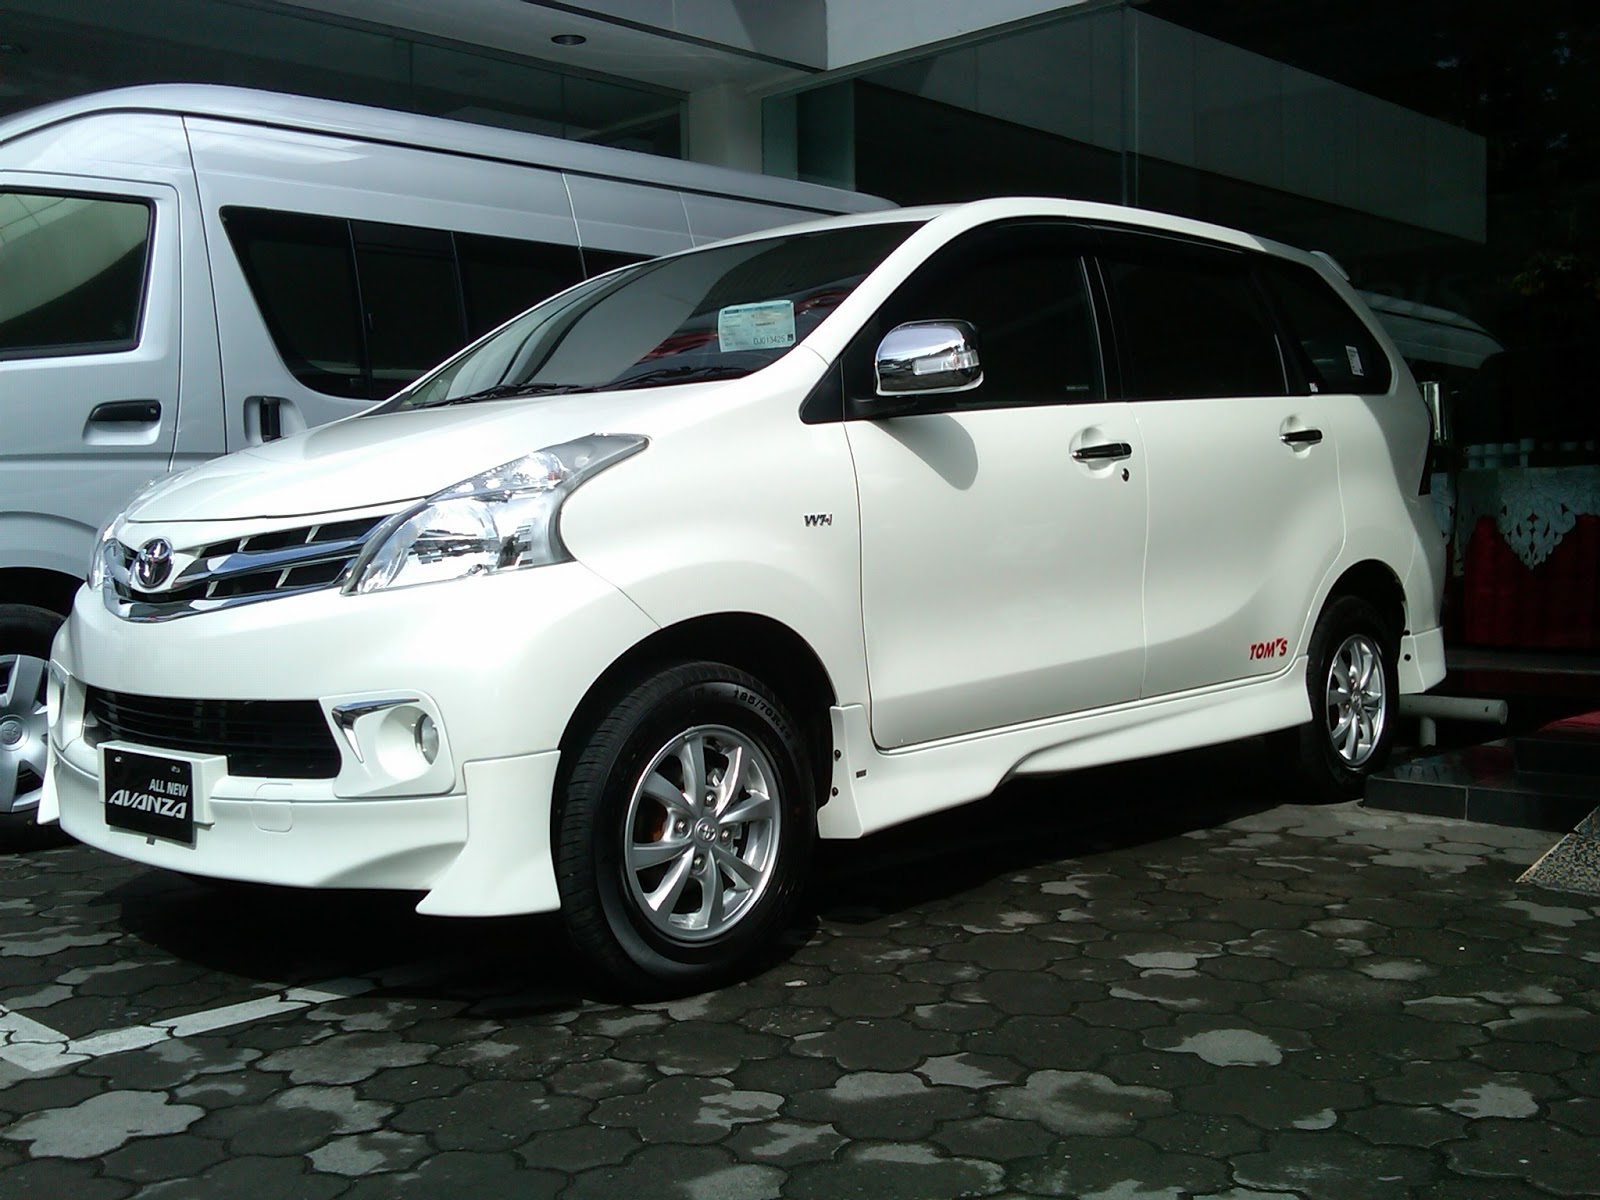 bodykit grand new avanza 2016 veloz interior kumpulan harga body kit mobil terlengkap modifikasi